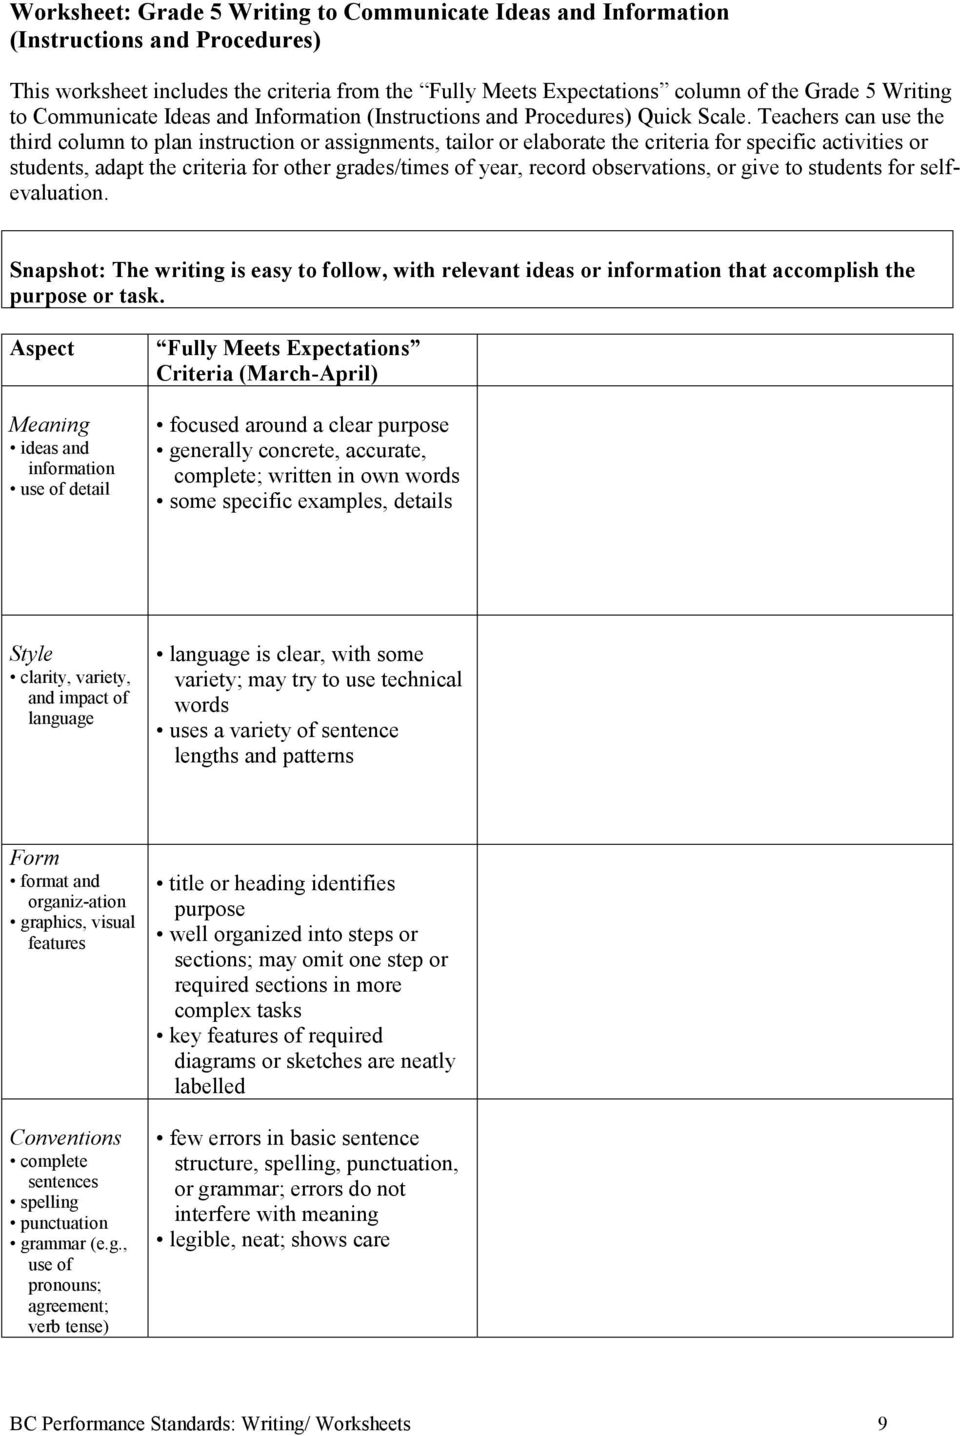 Teachers can use the third column to plan instruction or assignments, tailor or elaborate the criteria for specific activities or students, adapt the criteria for other grades/times of year, record